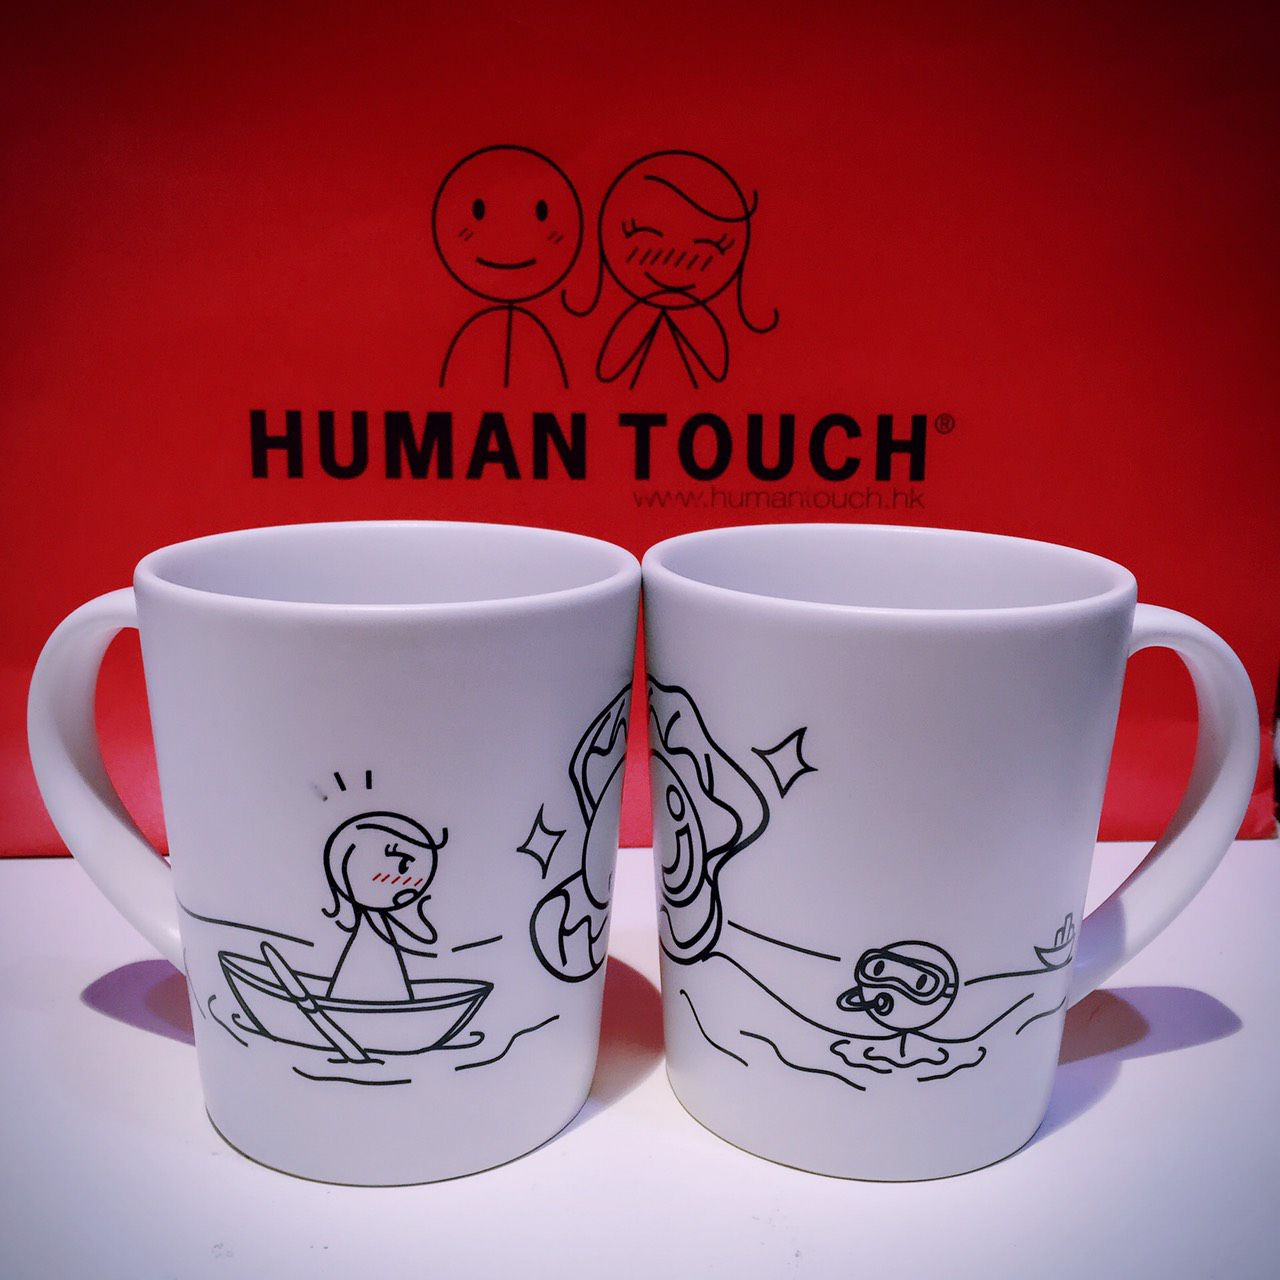 HUMAN TOUCH - YOU ARE MY PEARL 馬克杯